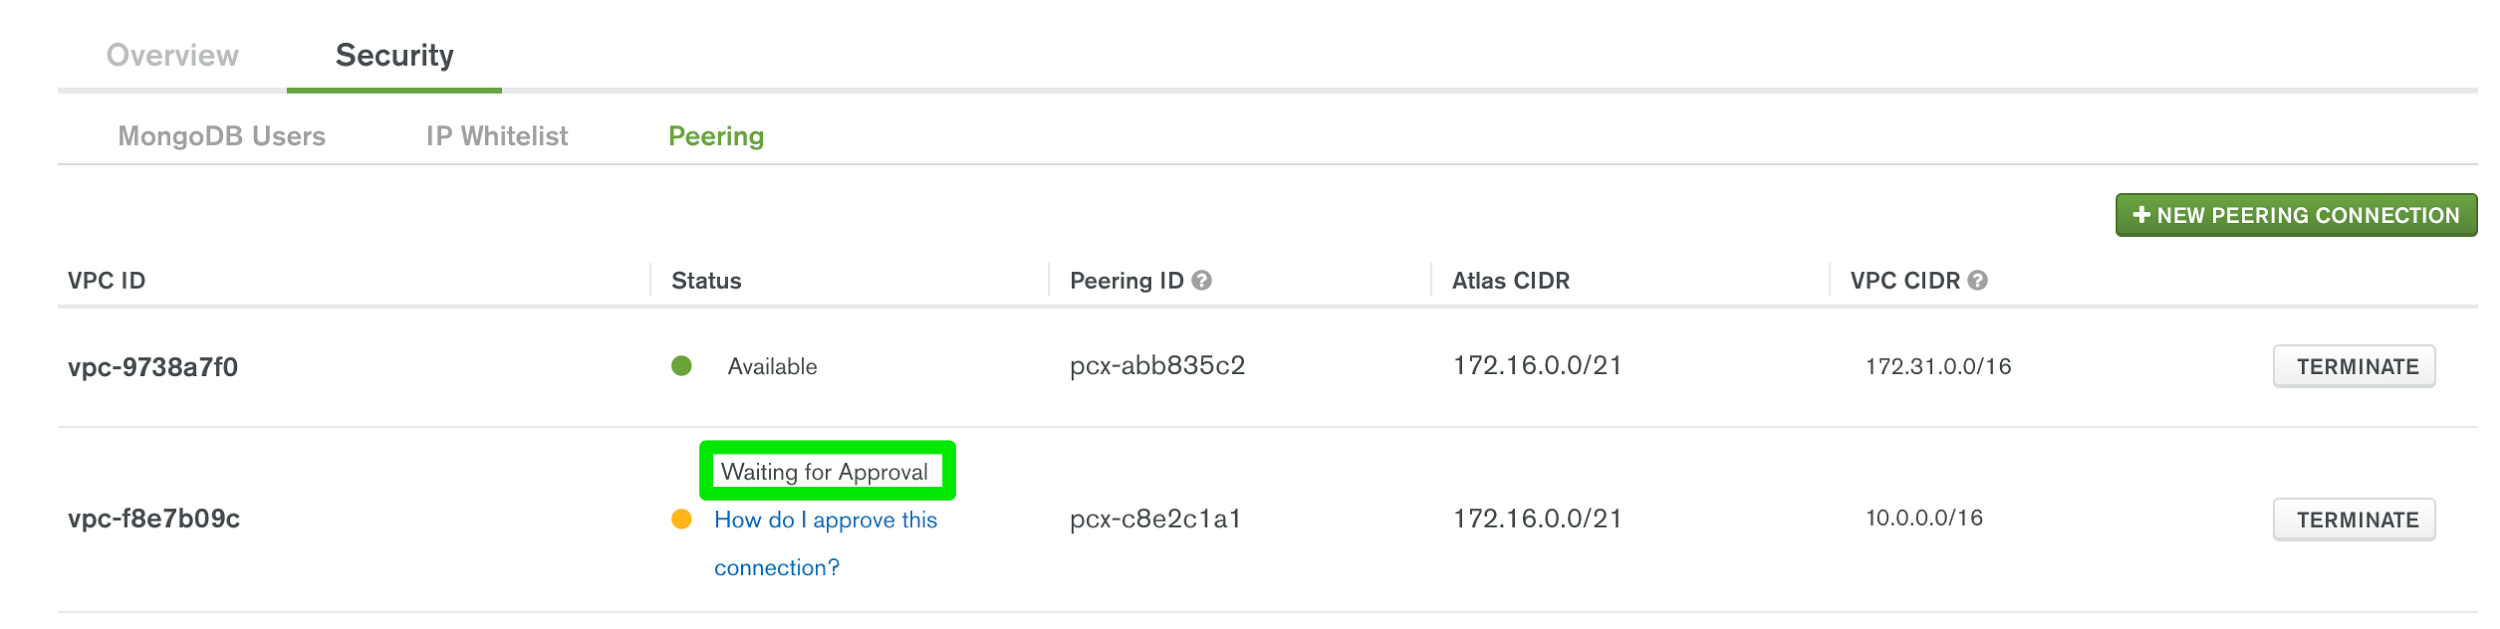 MongoDB Atlas VPC Peering Waiting for Approval